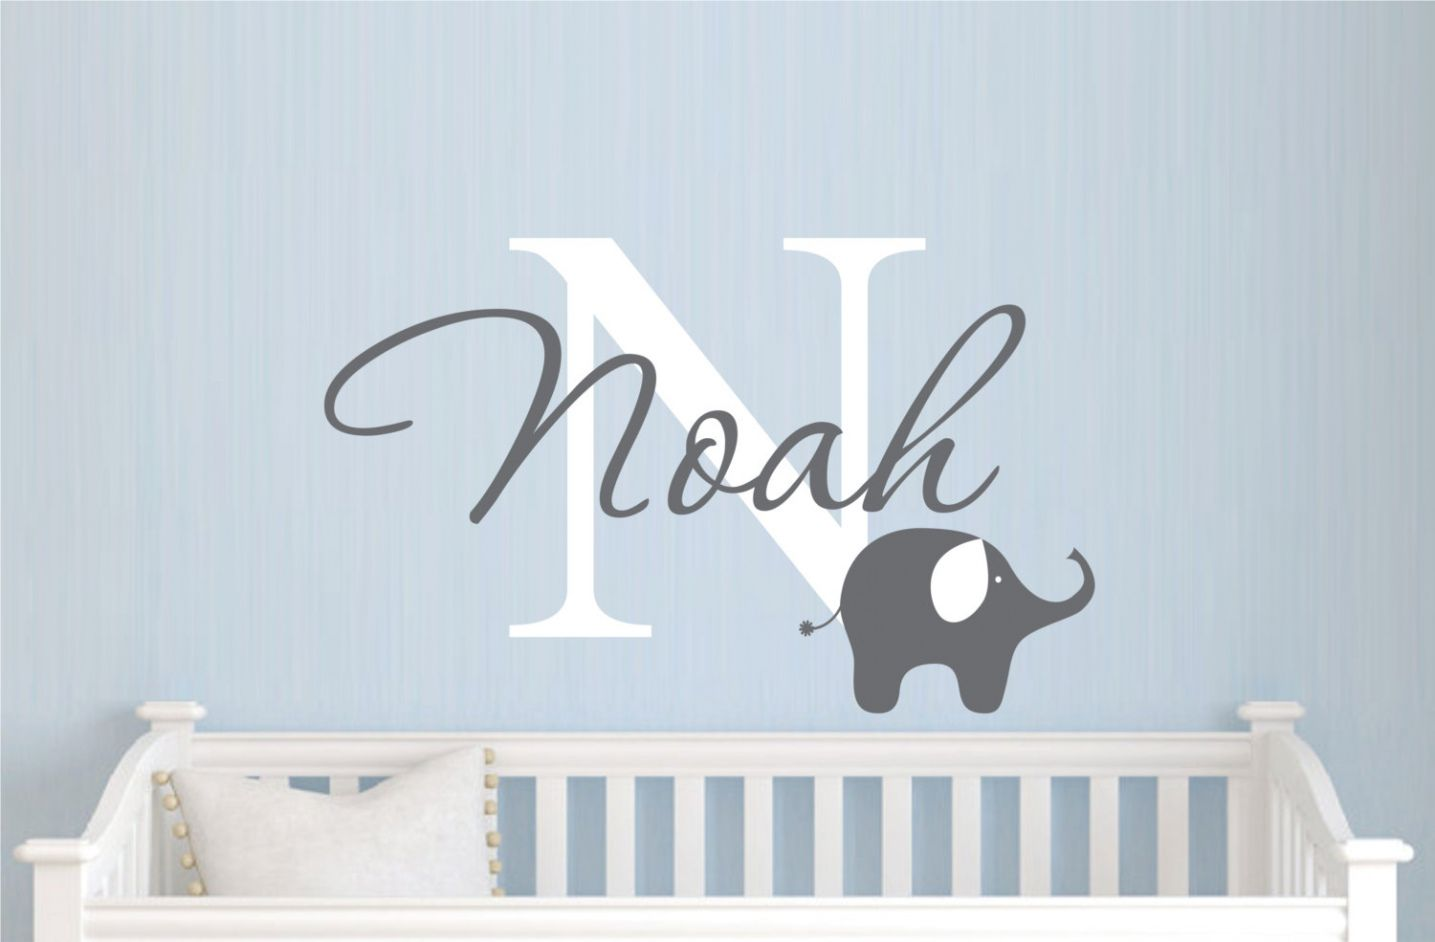 77 Wall Sticker For Baby Room Best Modern Furniture Check More At Http Www Itscultured Wandtattoo Kinderzimmer Junge Kinder Zimmer Wandtattoo Kinderzimmer